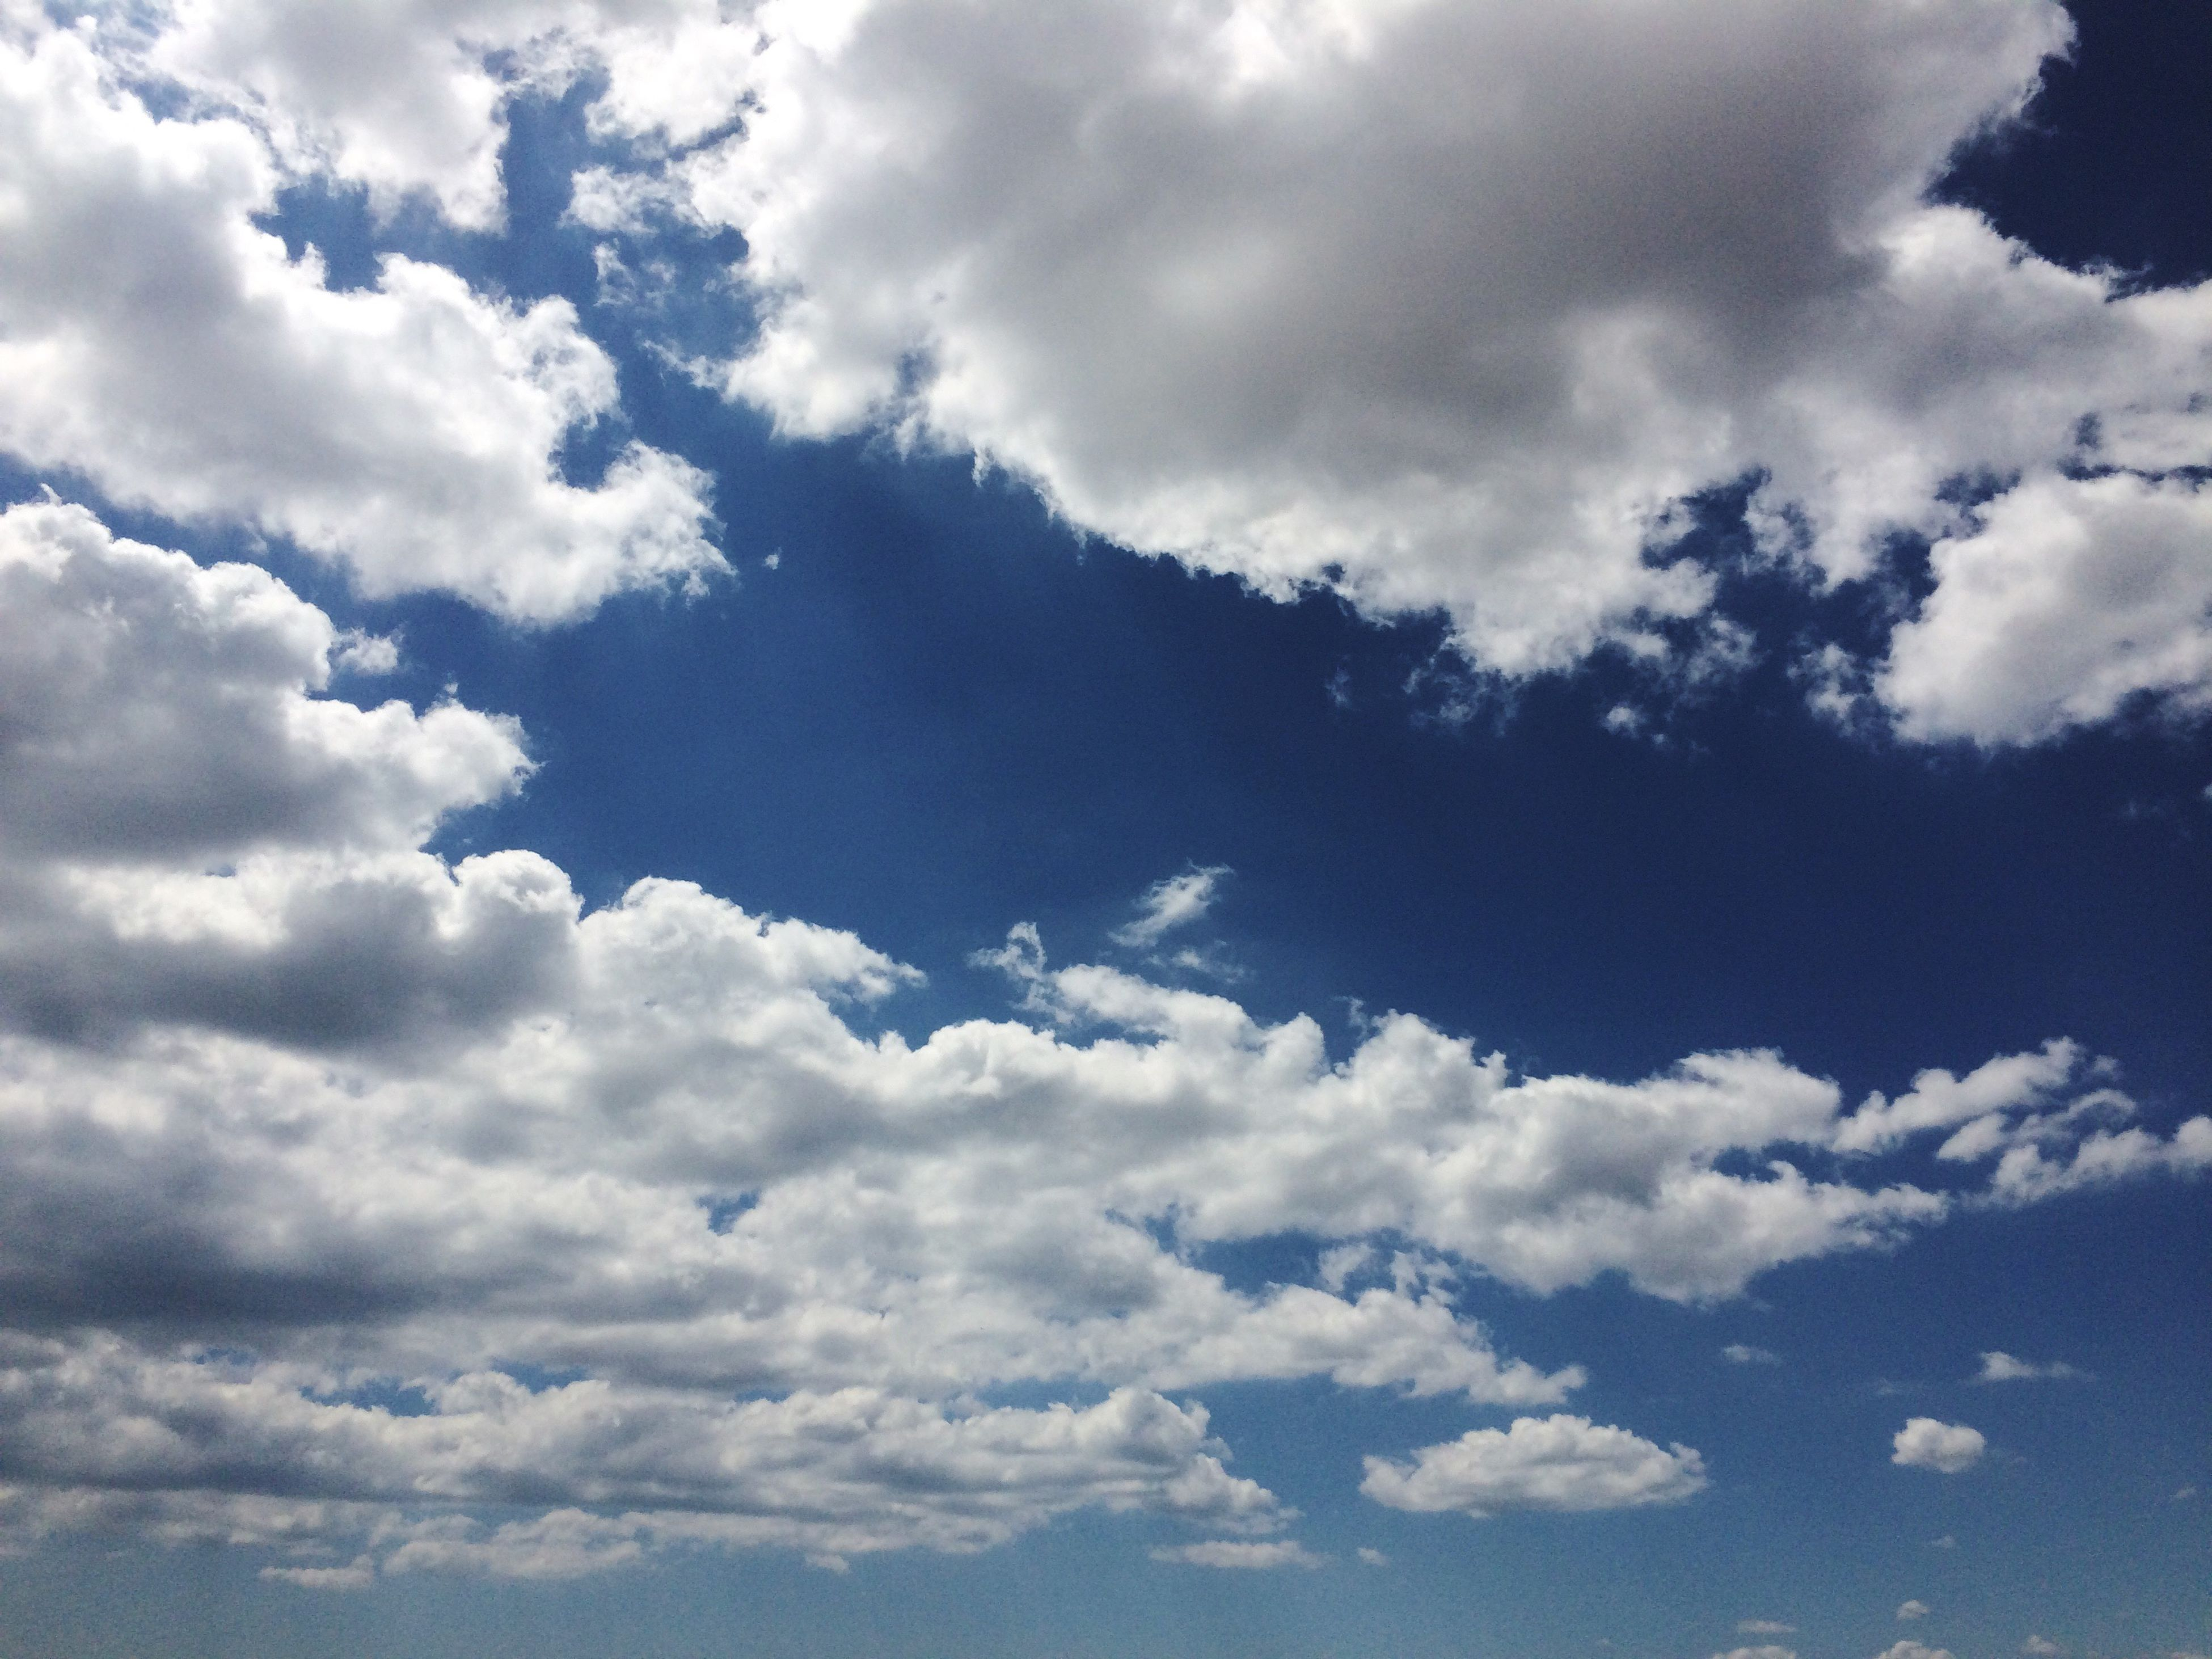 sky, cloud - sky, beauty in nature, tranquility, scenics, low angle view, tranquil scene, cloudy, sky only, cloudscape, nature, cloud, white color, backgrounds, blue, idyllic, fluffy, white, day, outdoors, majestic, full frame, no people, weather, softness, cumulus cloud, overcast